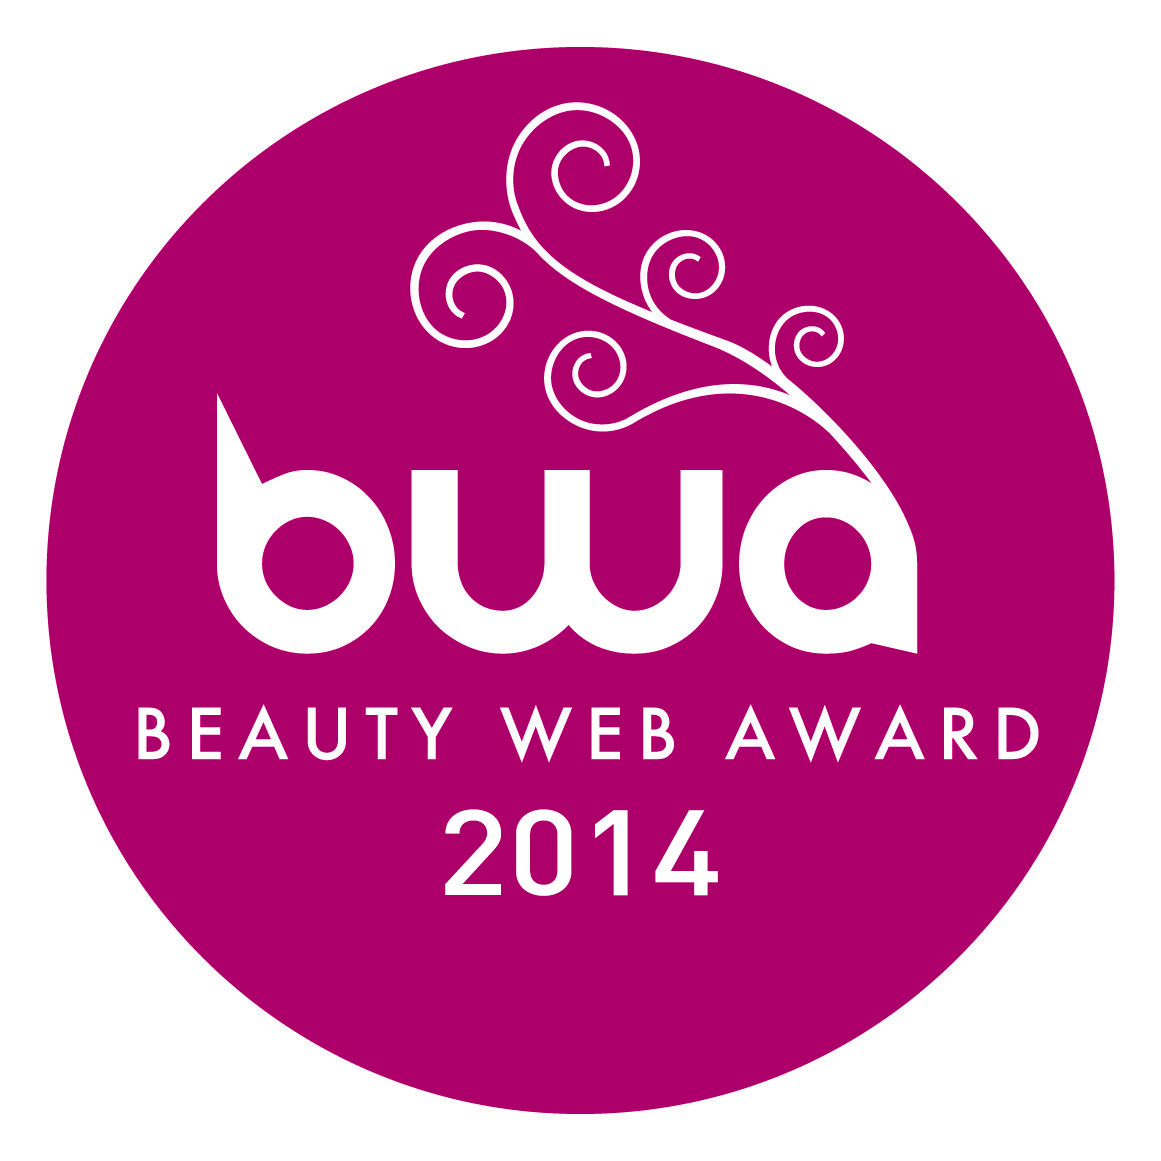 beauty Web Award 2014